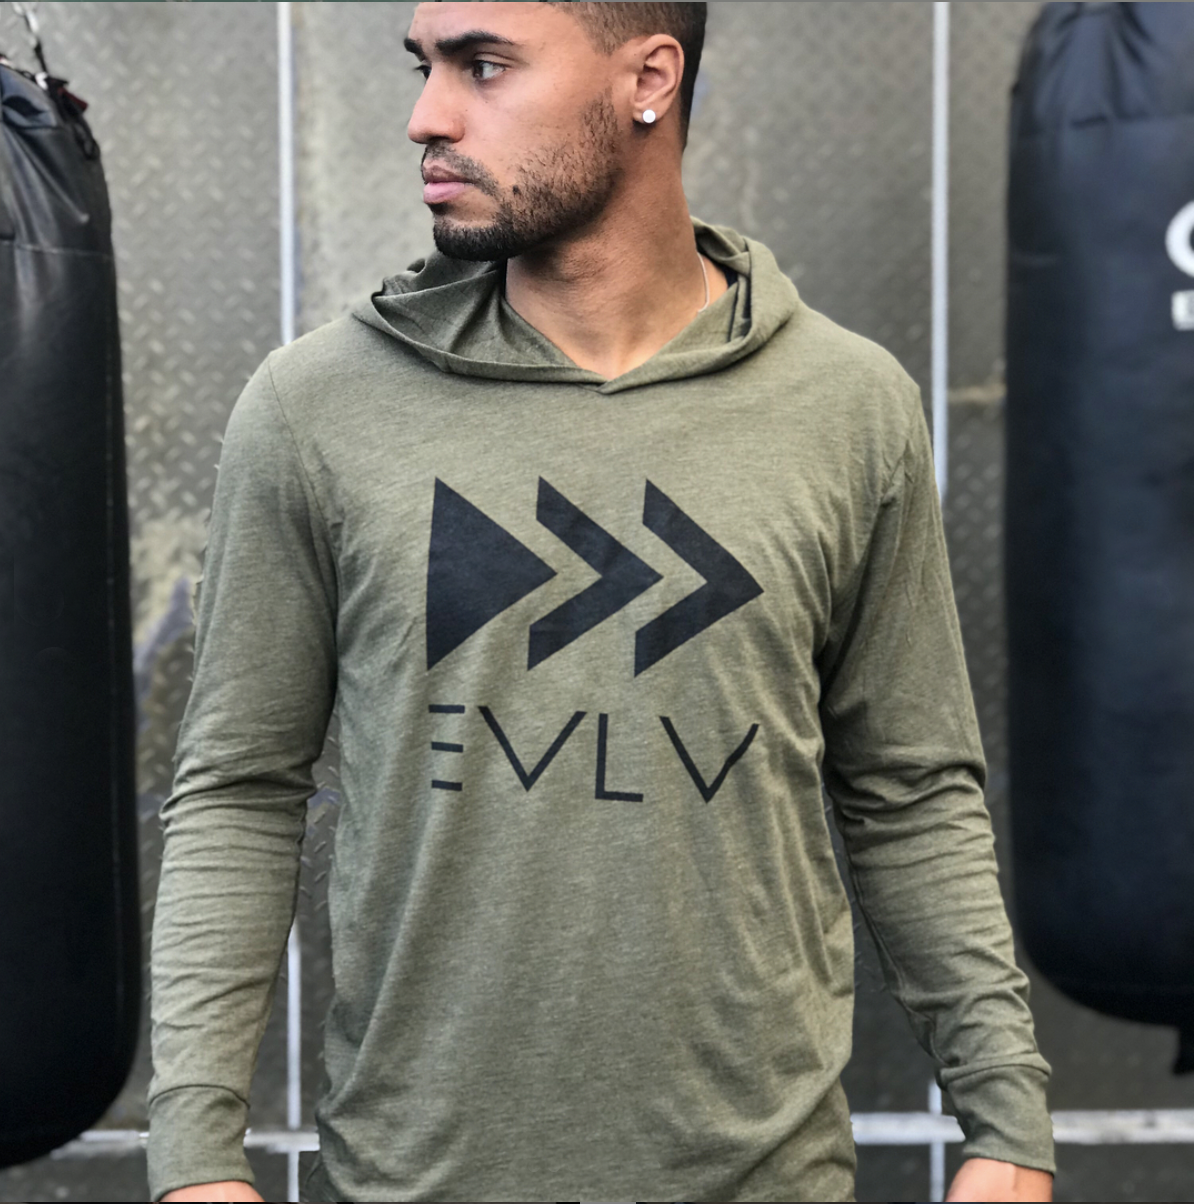 EVLV_Lightweight-Hoodie_Olive-M.png